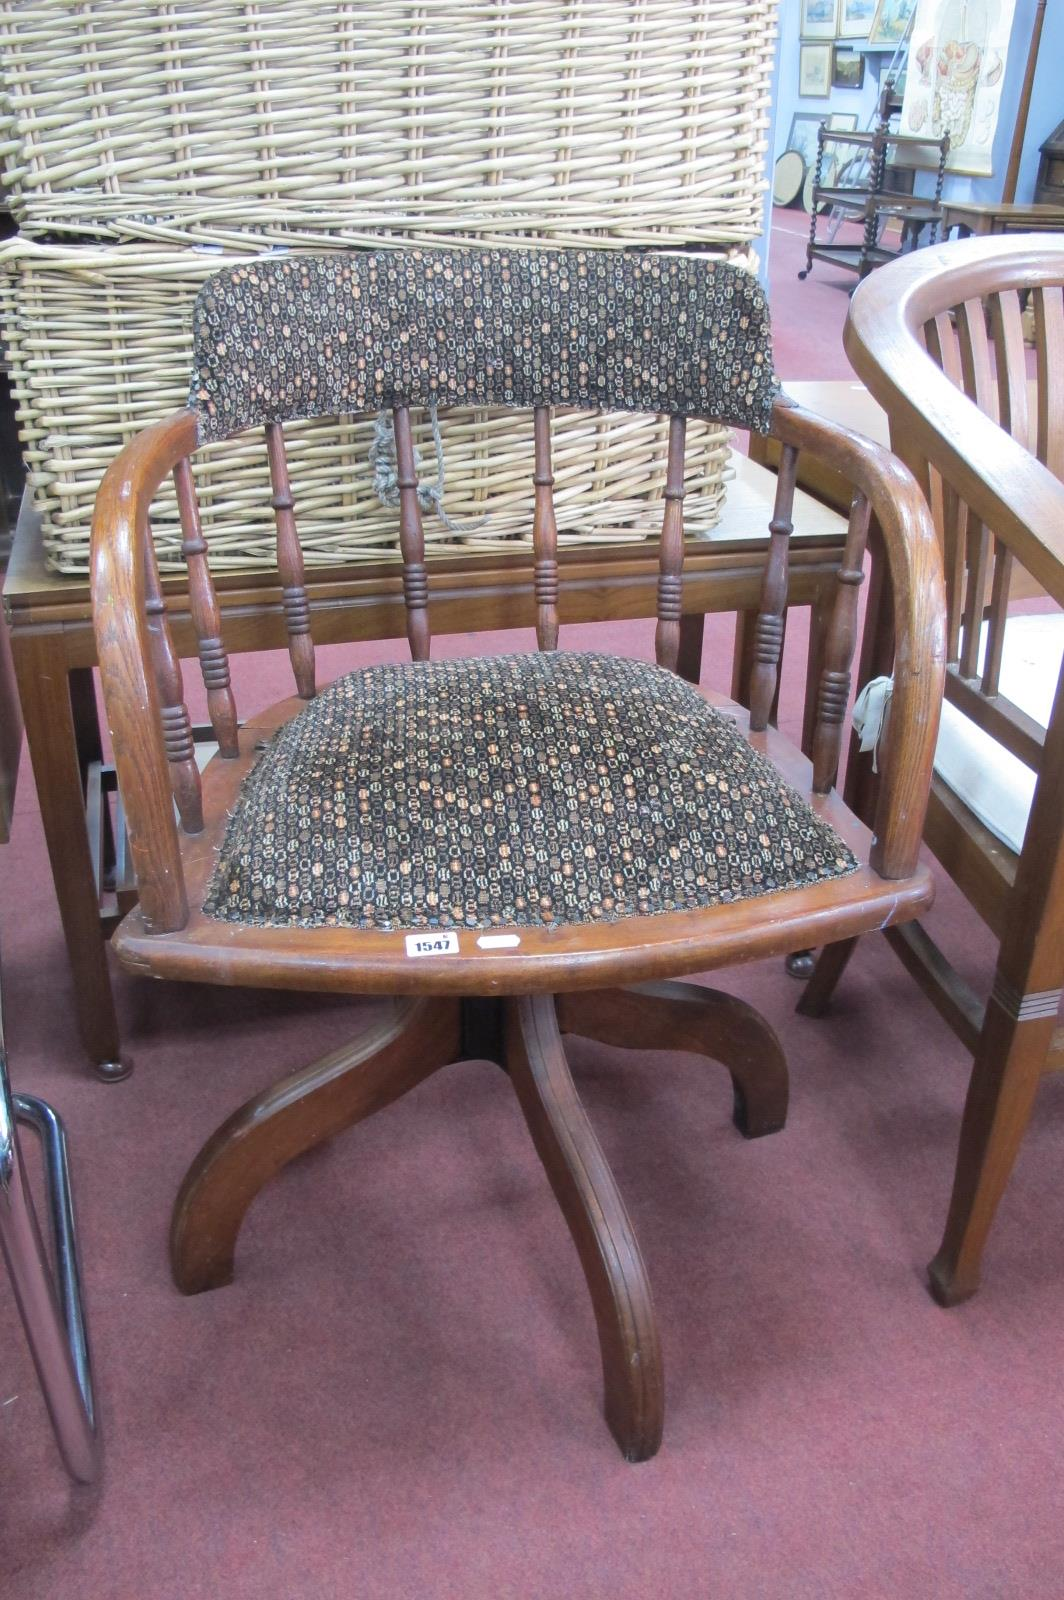 An Early XX Century Oak Revolving Office Chair, with adjustable height mechanism.